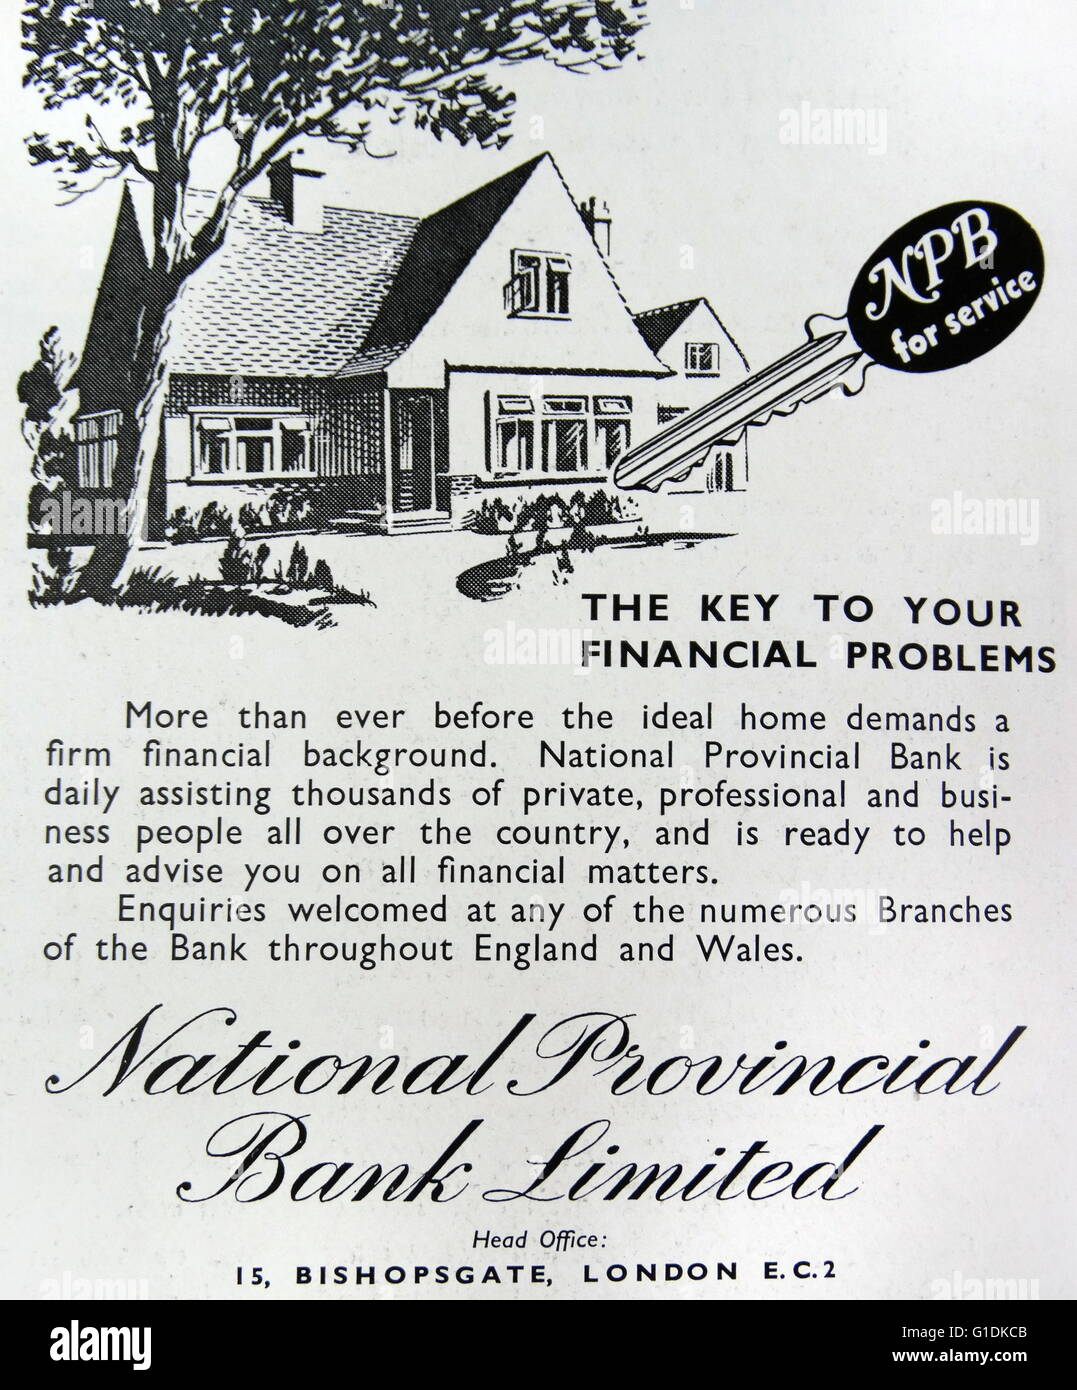 Advert for National Provincial Bank Limited for financial advice - Stock Image